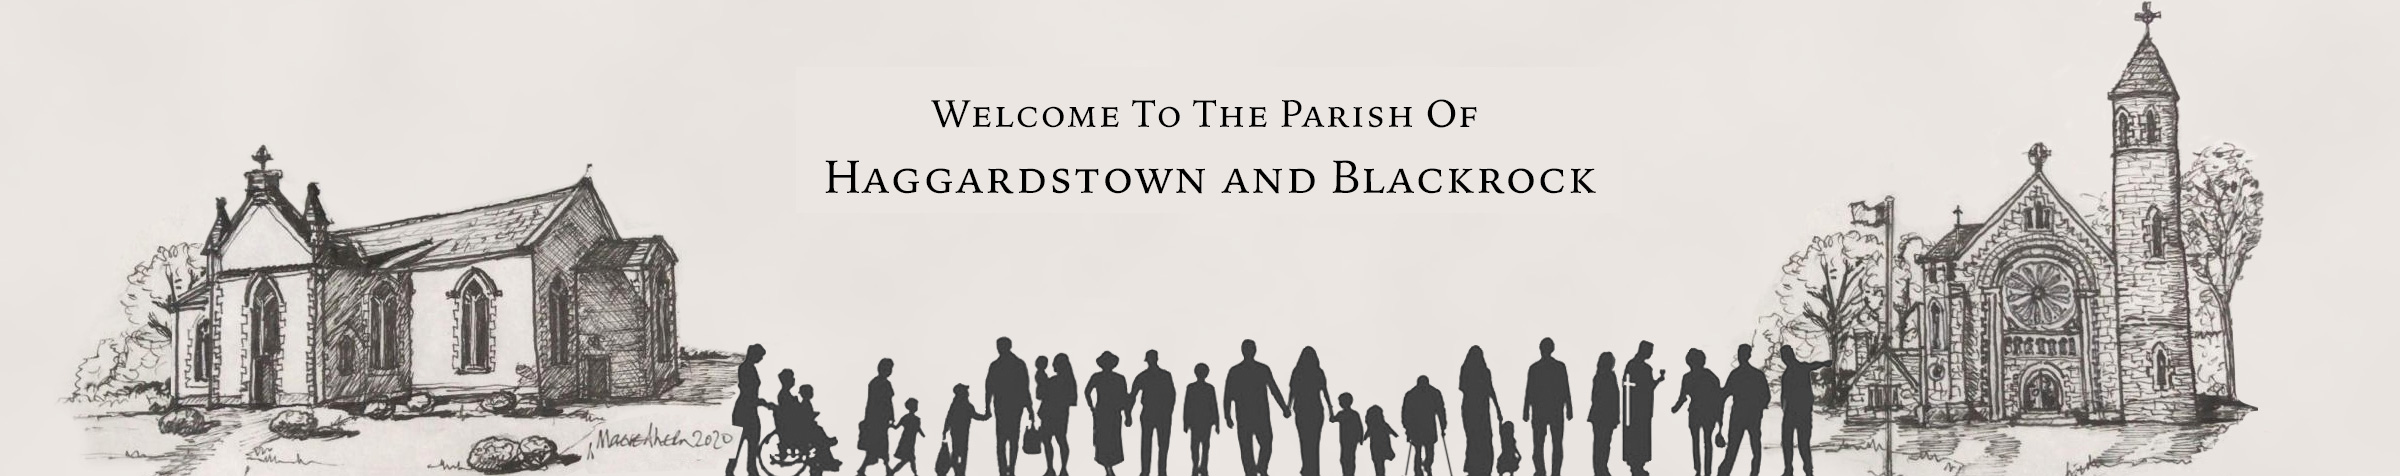 Welcome To The Parish Of  Haggardstown and Blackrock